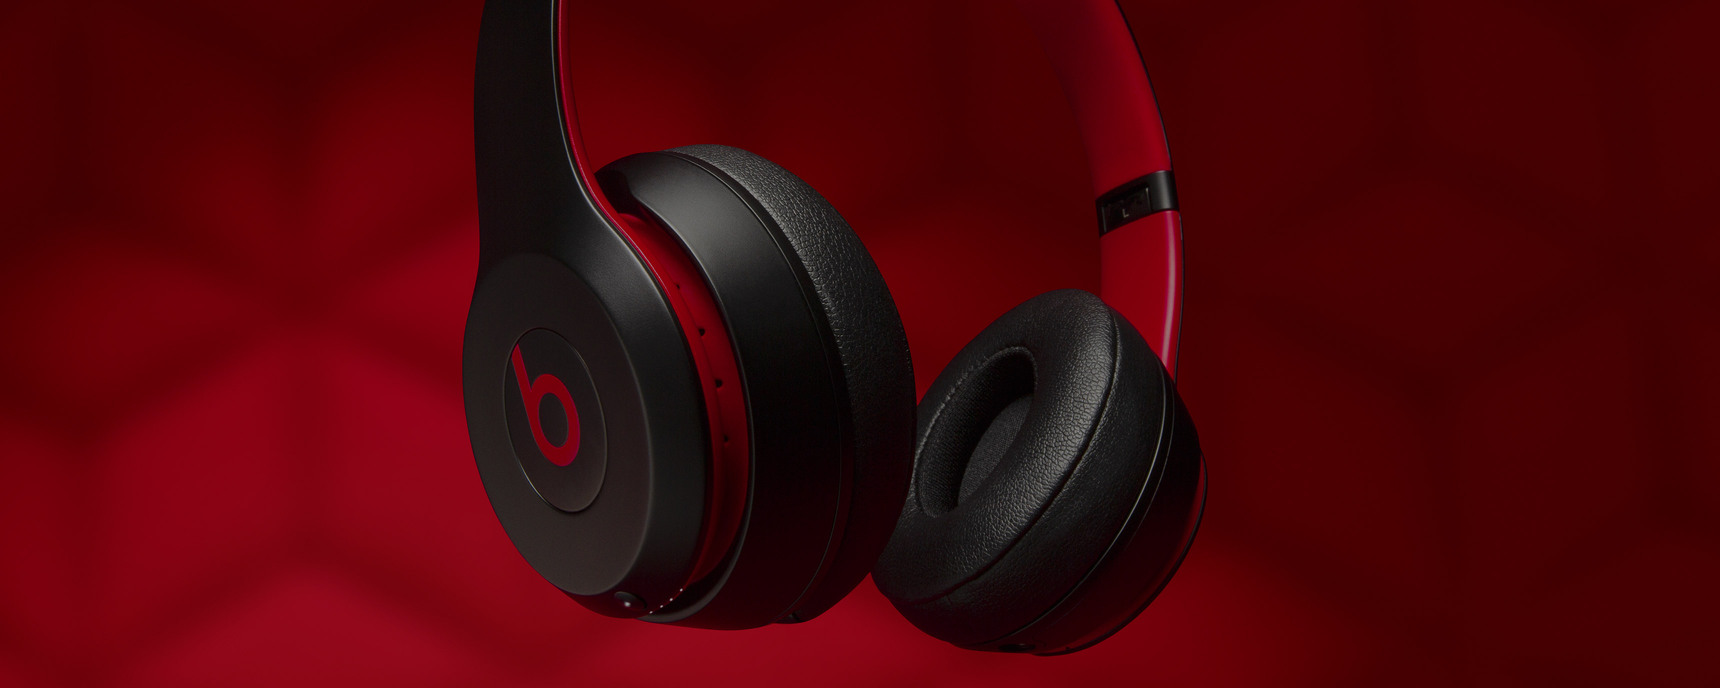 Beats-by-Dr-Dre-made_defiant_solo3_macro_desktop_3440x1376.jpg.large.1x